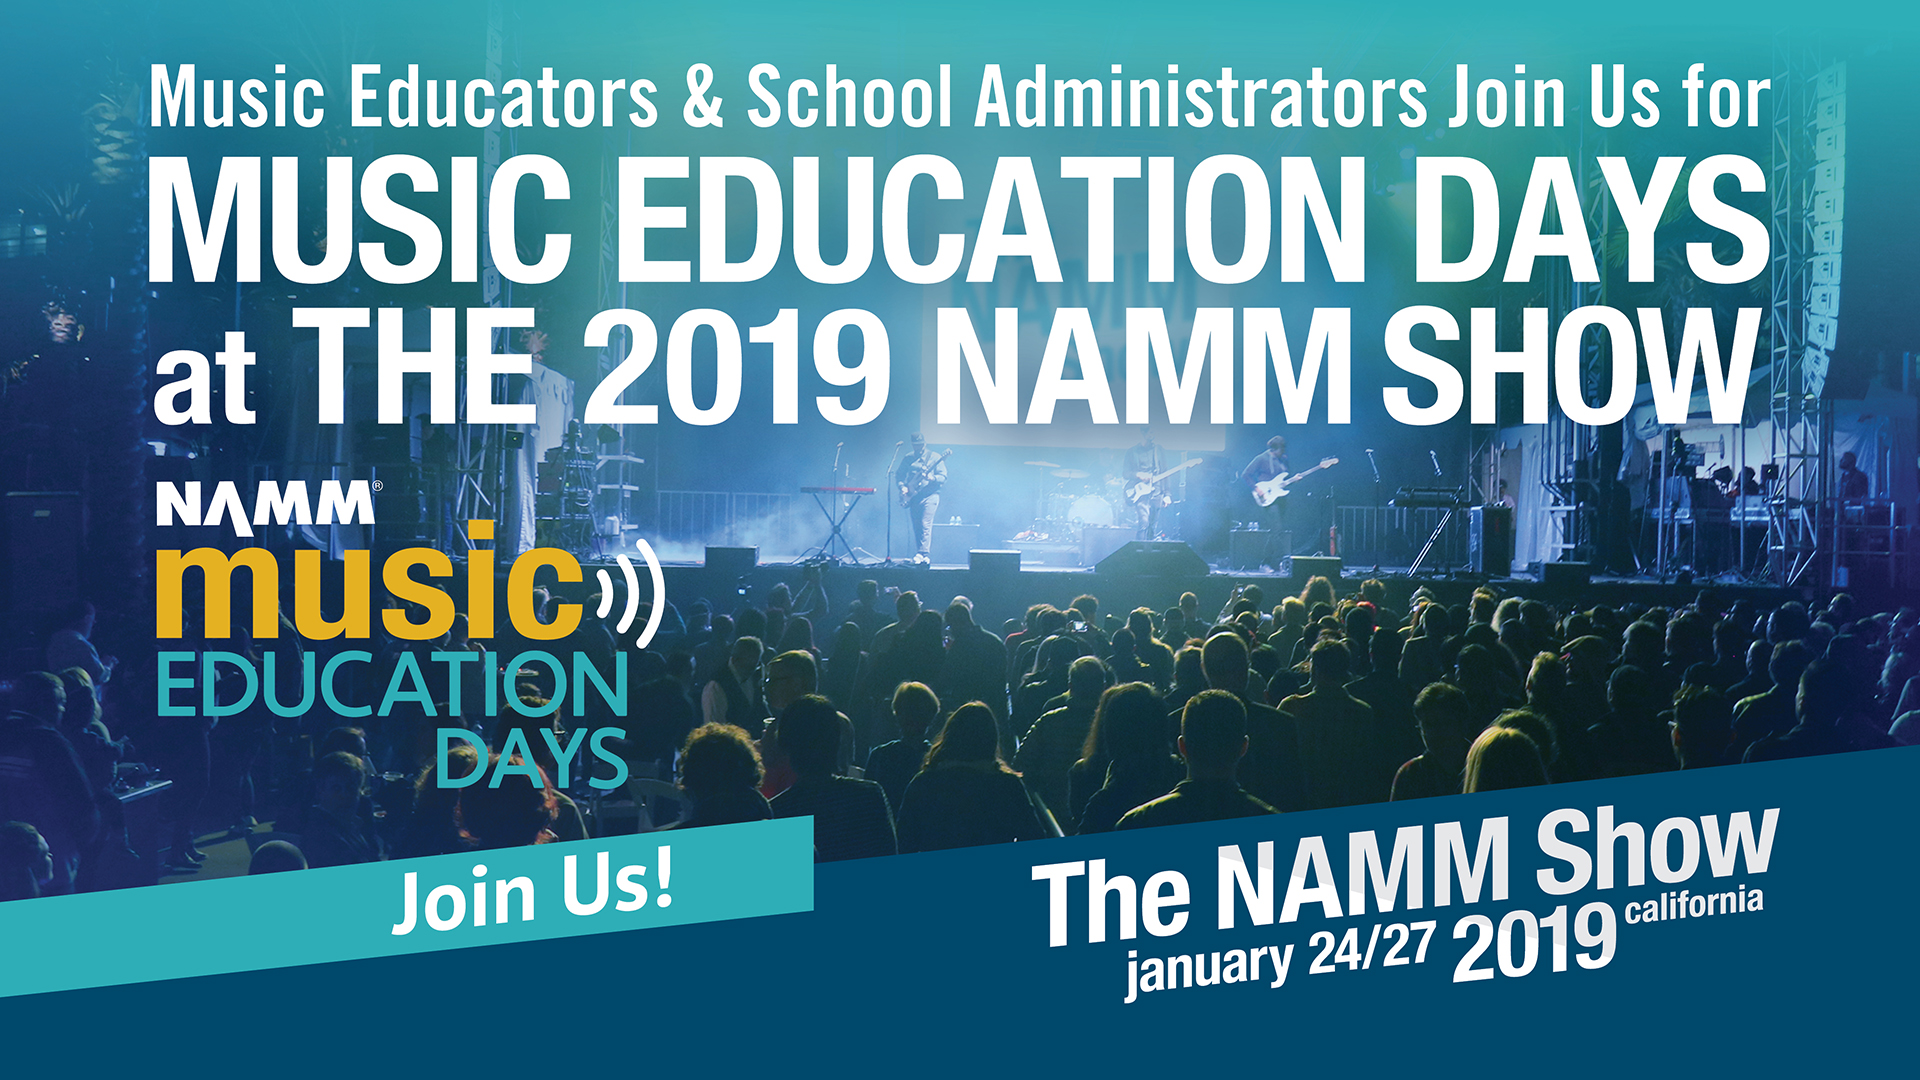 Music Education Days at The 2019 NAMM Show